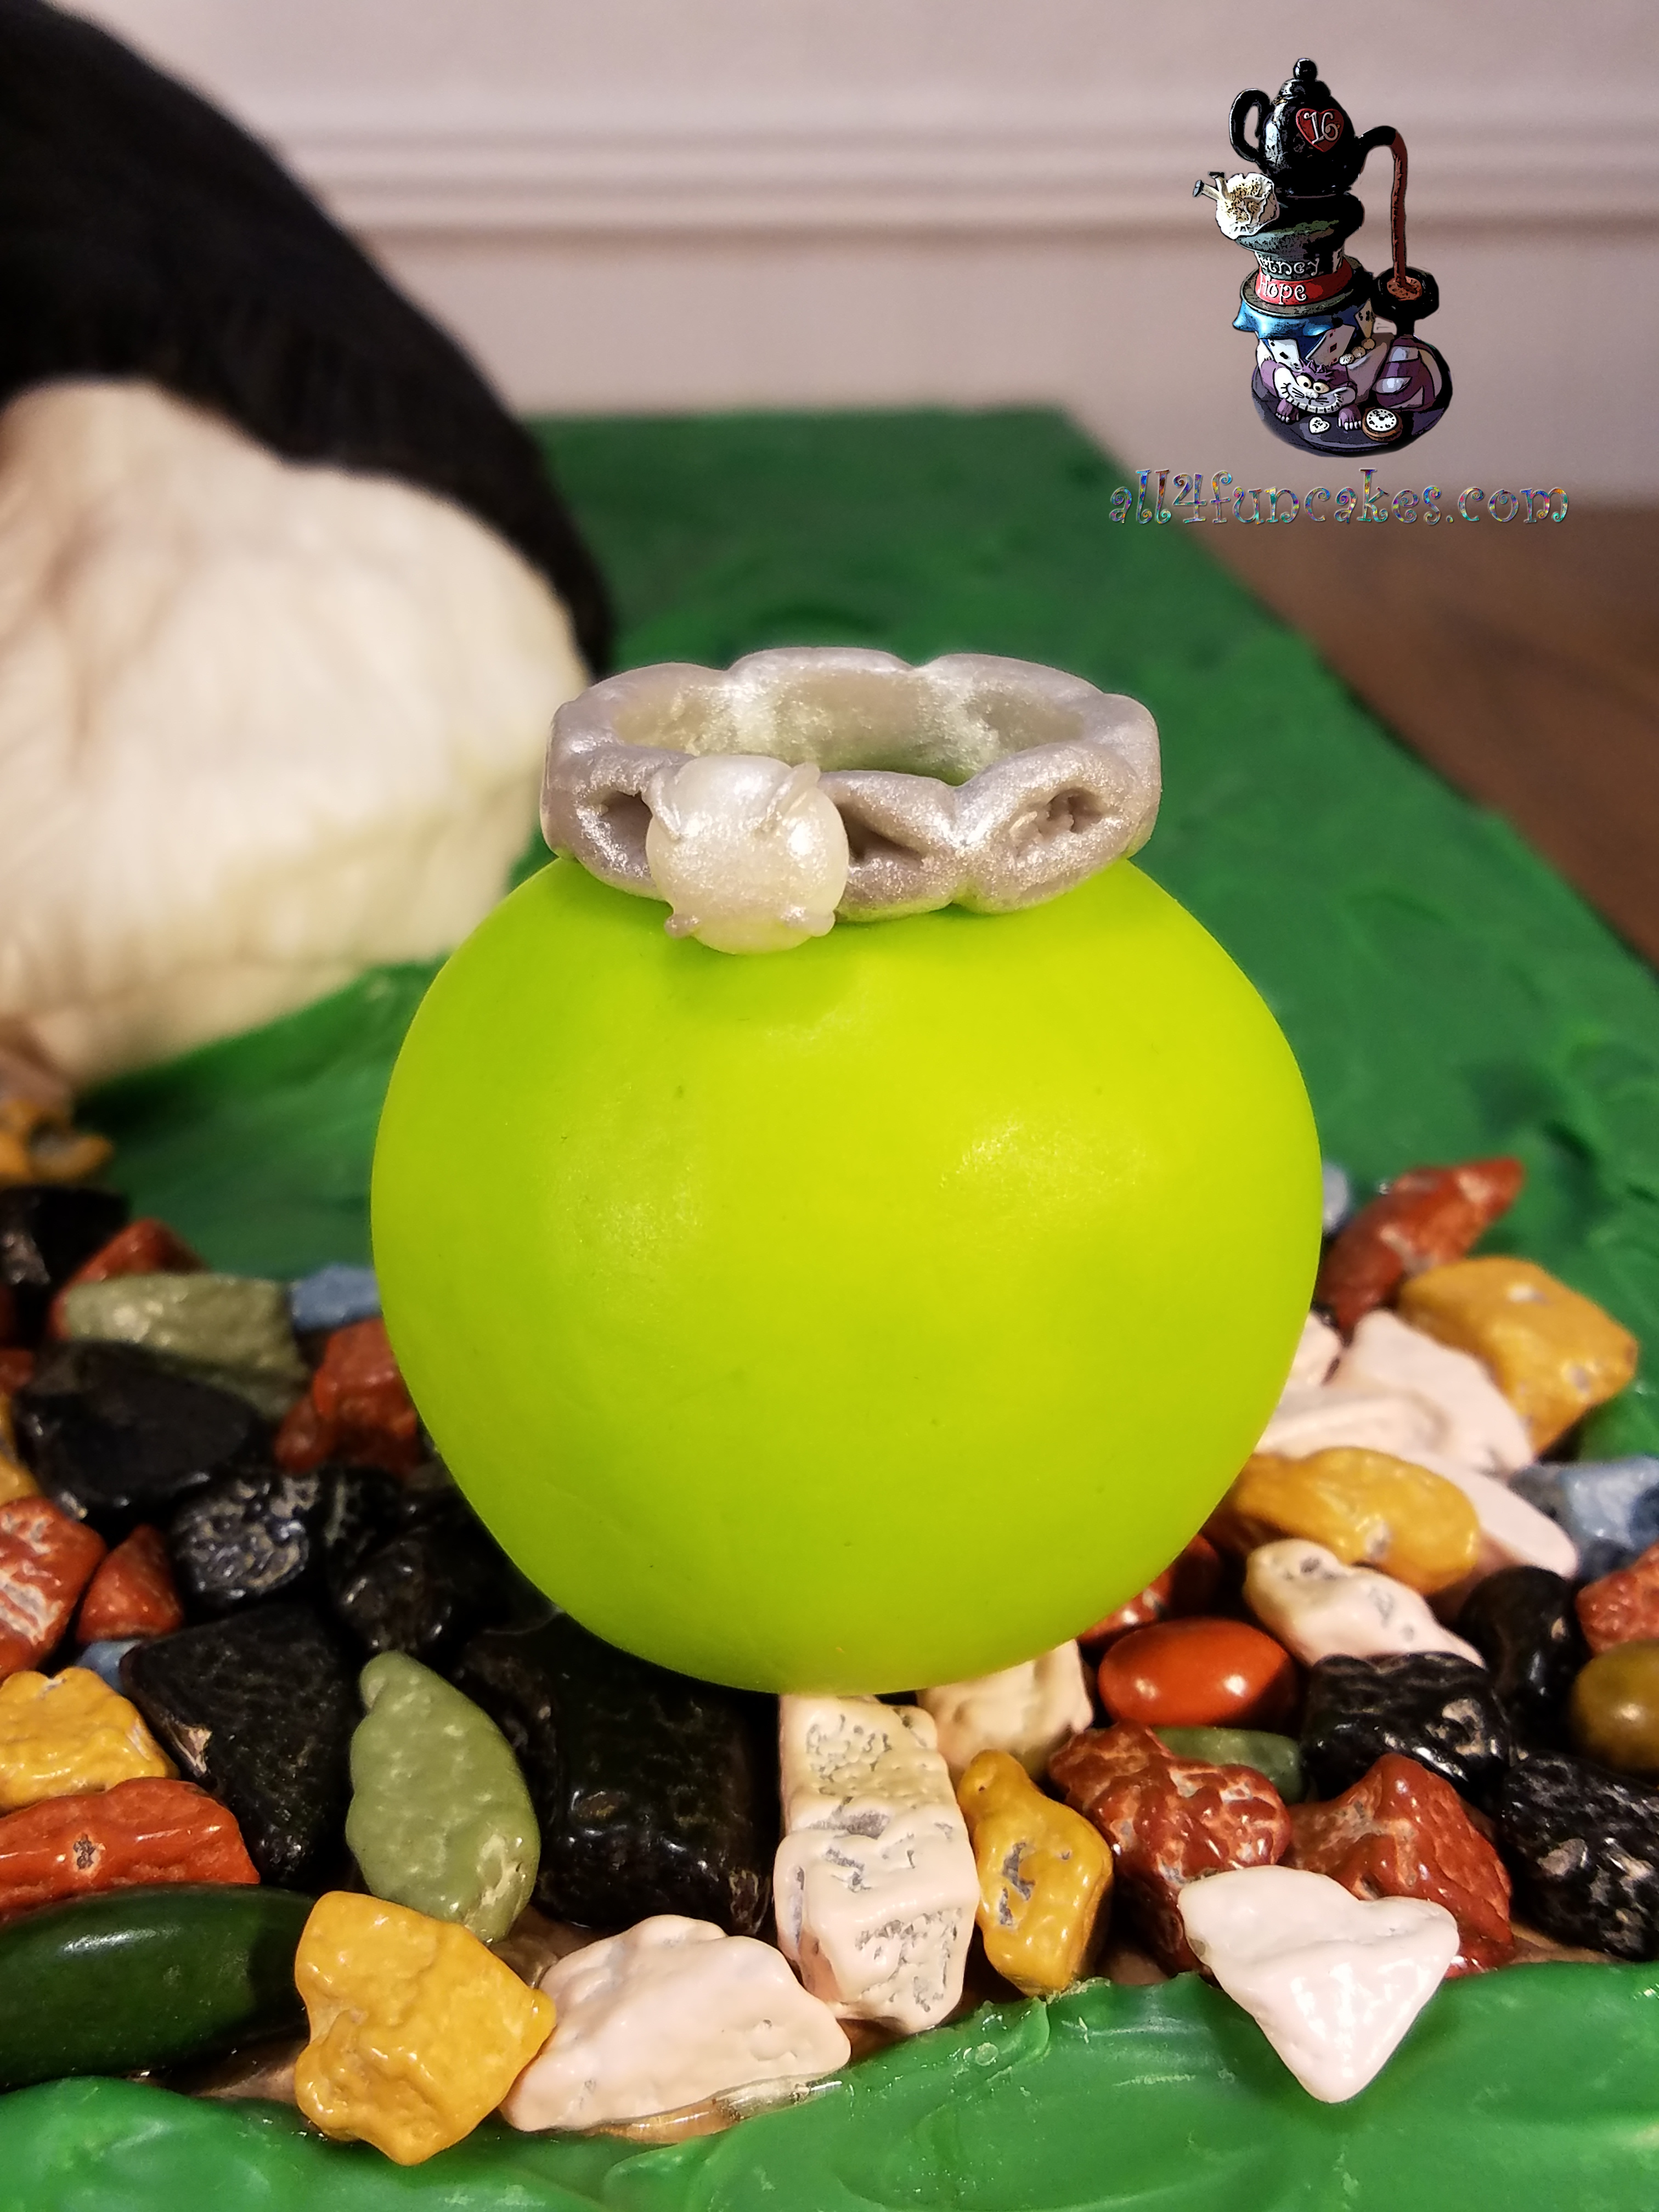 Tennis Ball Toy with Engagement Ring for Noah the Bernese Mountain Dog Sculpted Wedding Rehearsal Cake by All4Fun Cakes LLC 2018